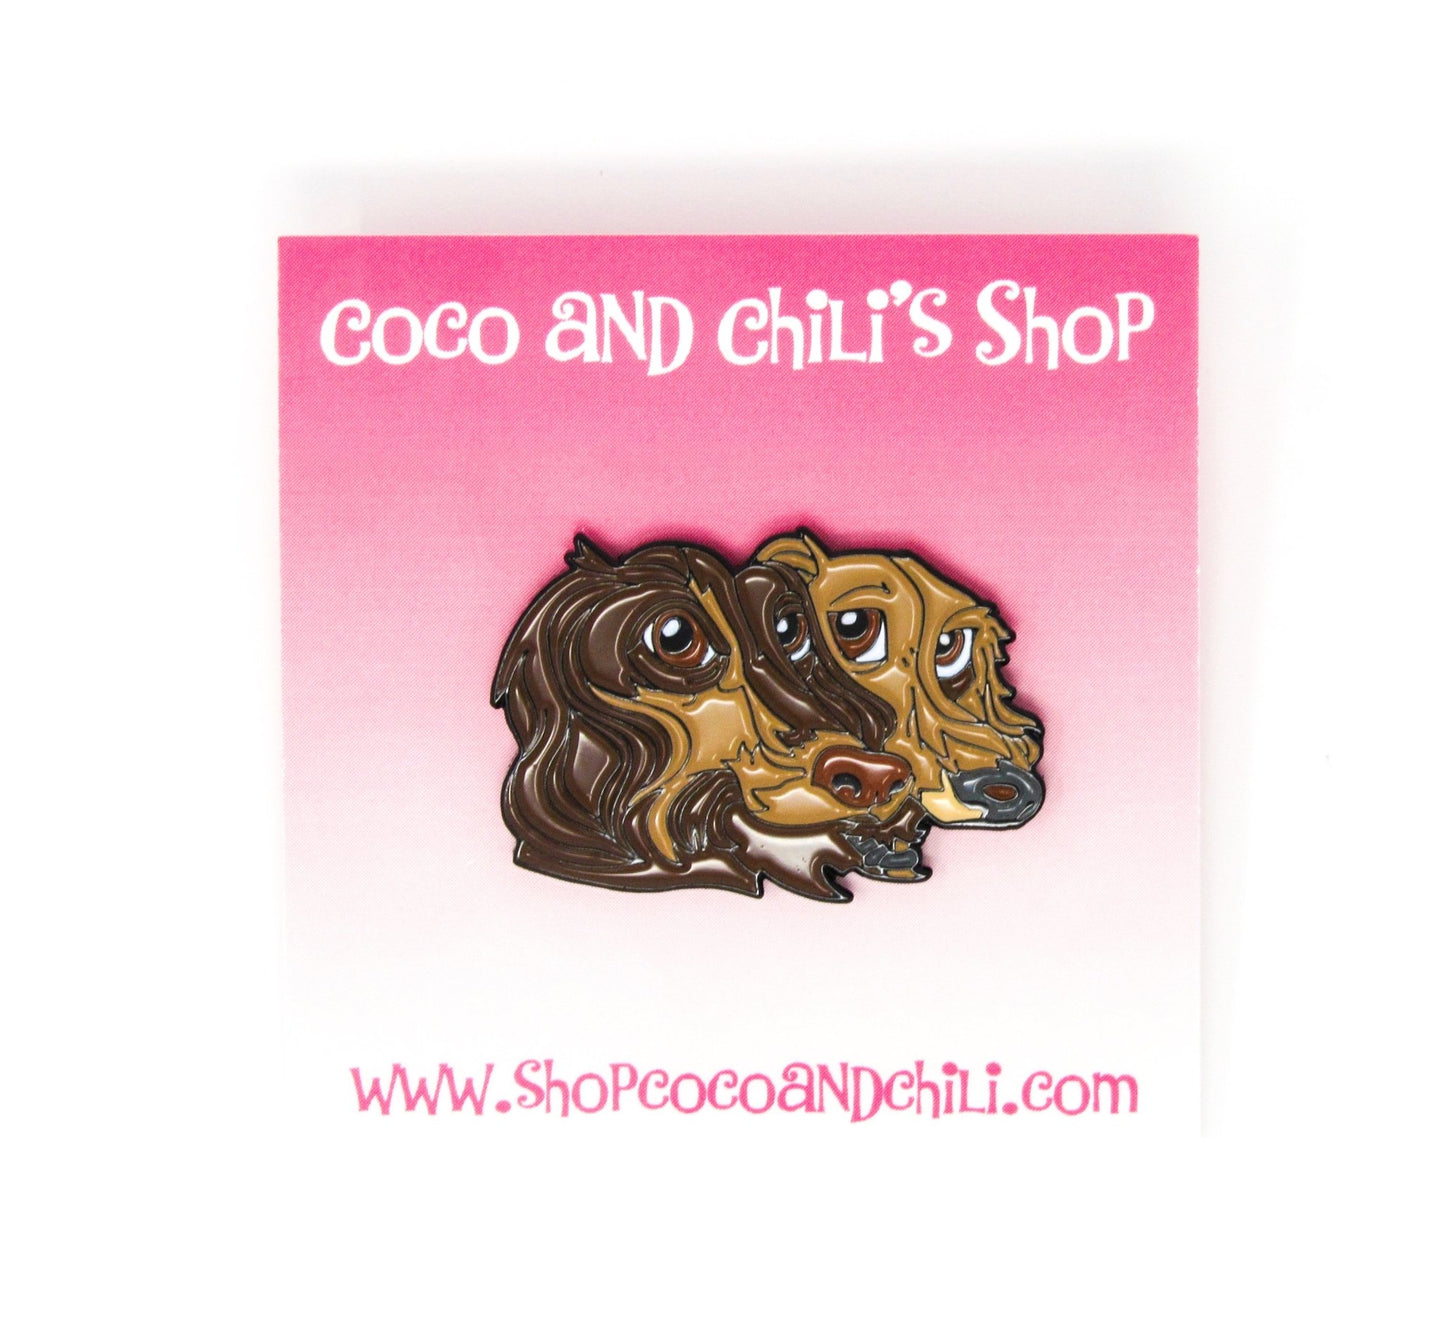 Coco and Chili's Pins | Coco and Chili's Shop